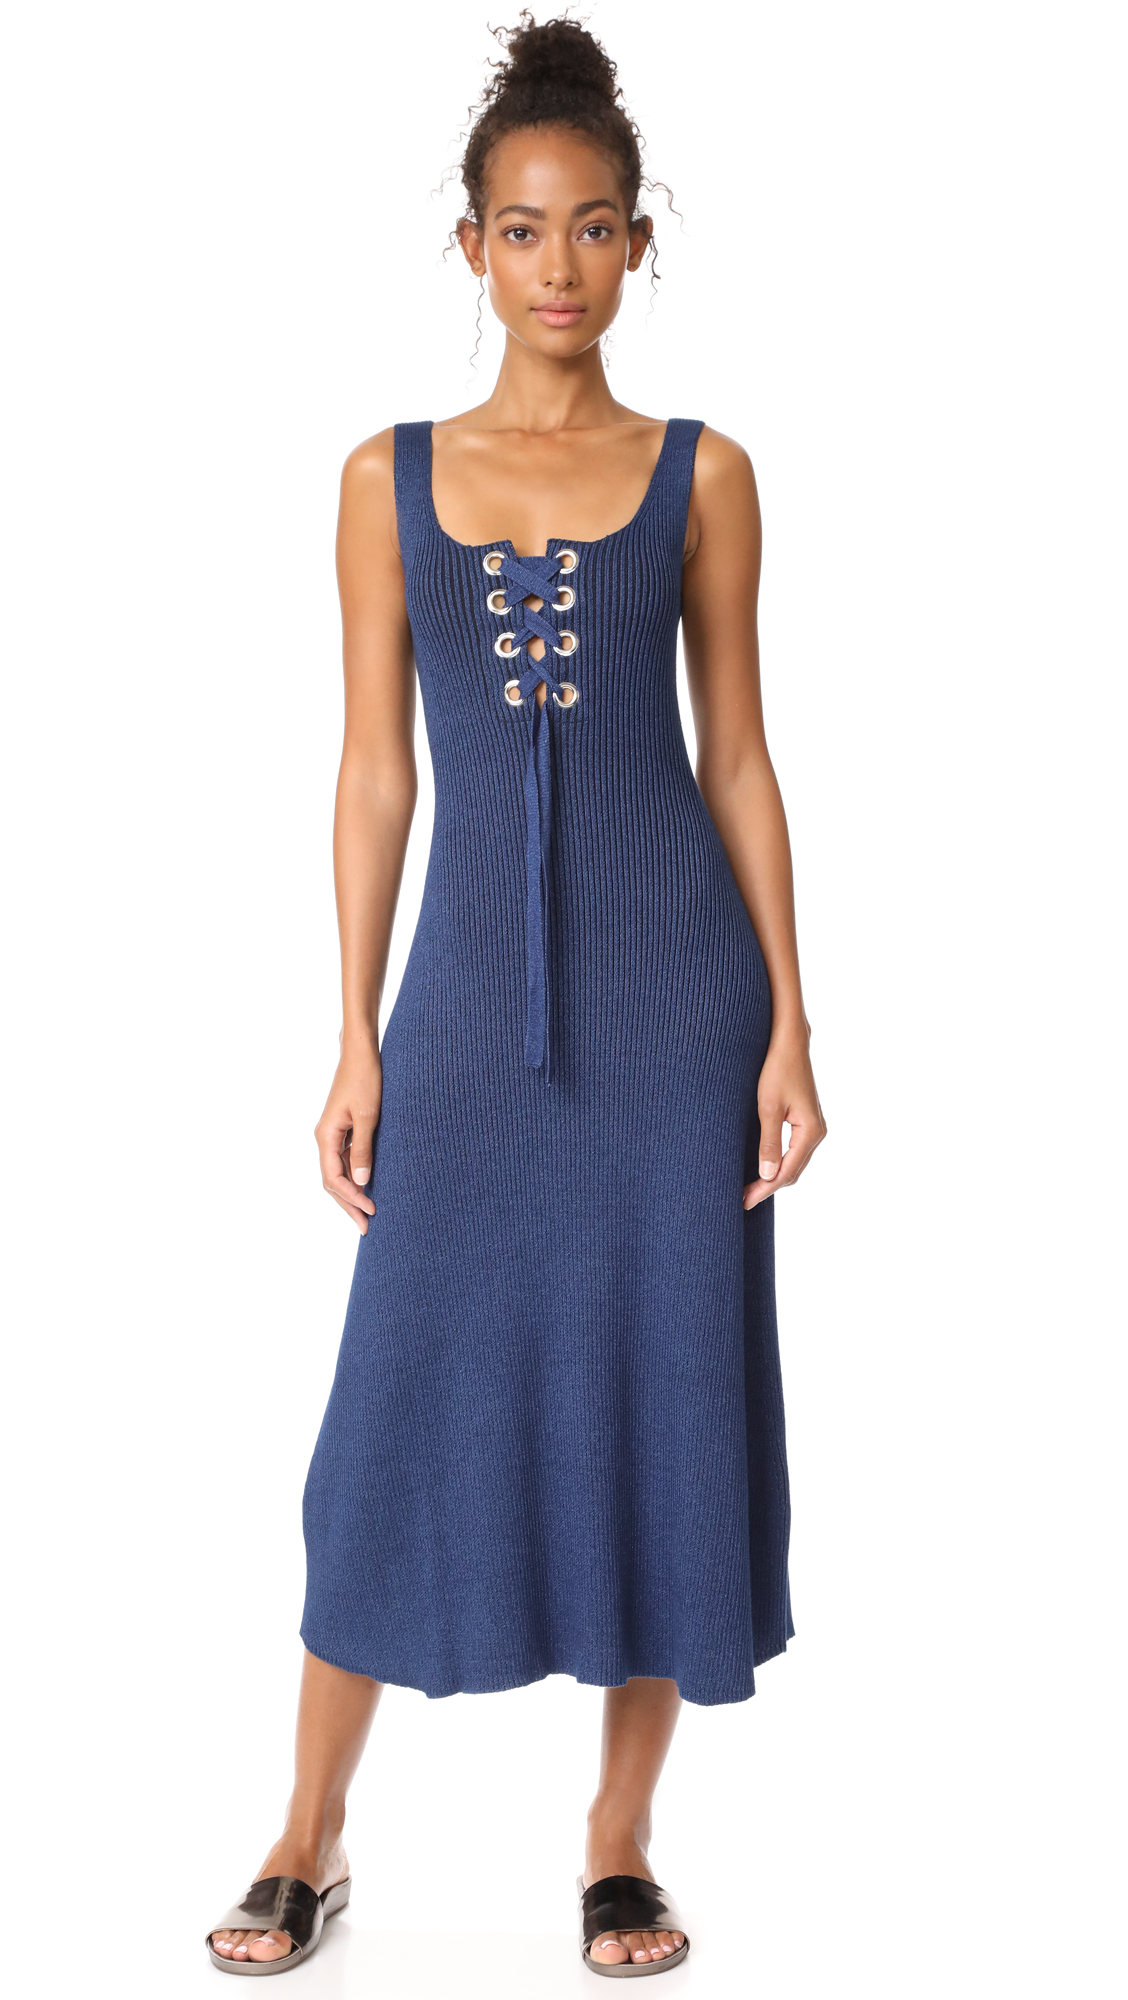 Mara Hoffman Lena Dress - Indigo